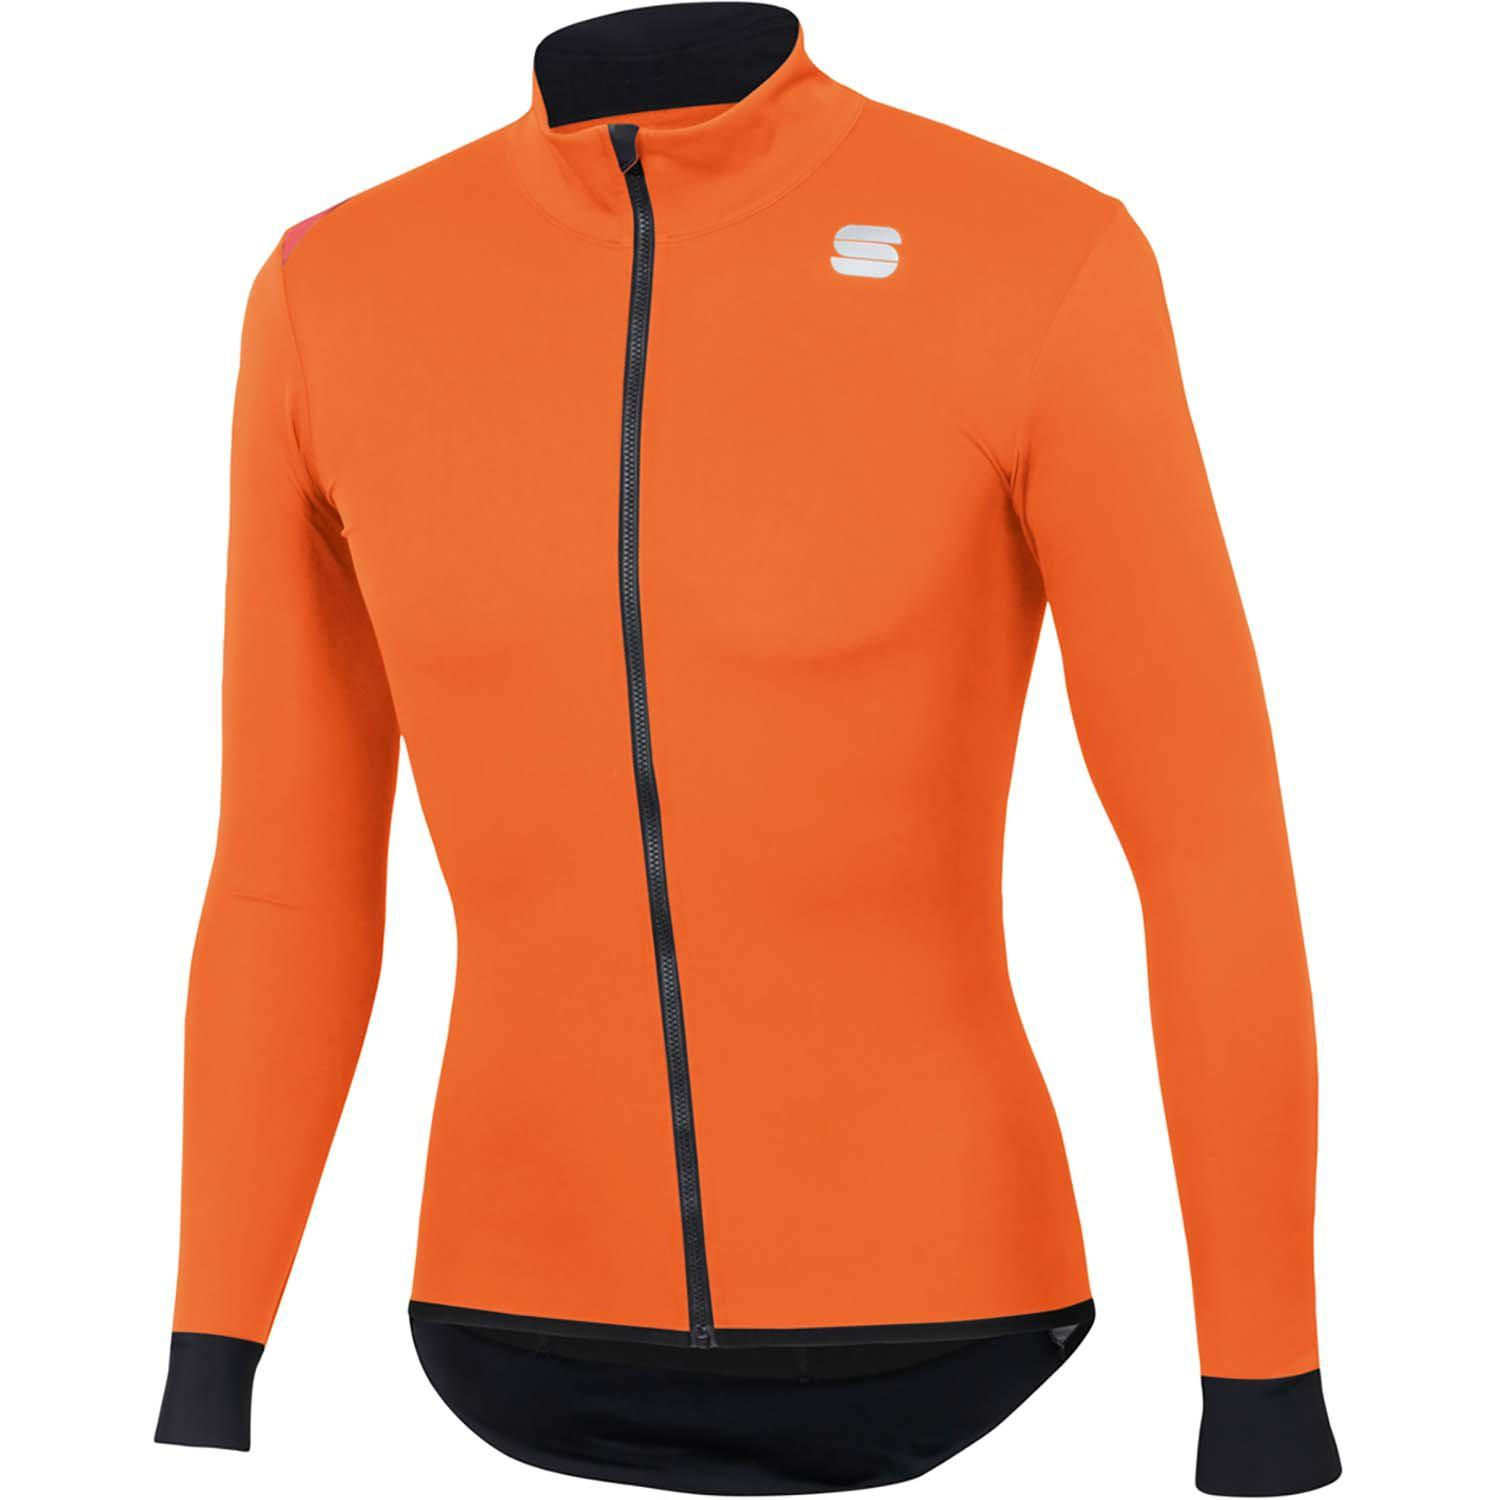 Sportful-Sportful Fiandre Light NoRain Jacket-Orange SDR-S-SF200218502-saddleback-elite-performance-cycling